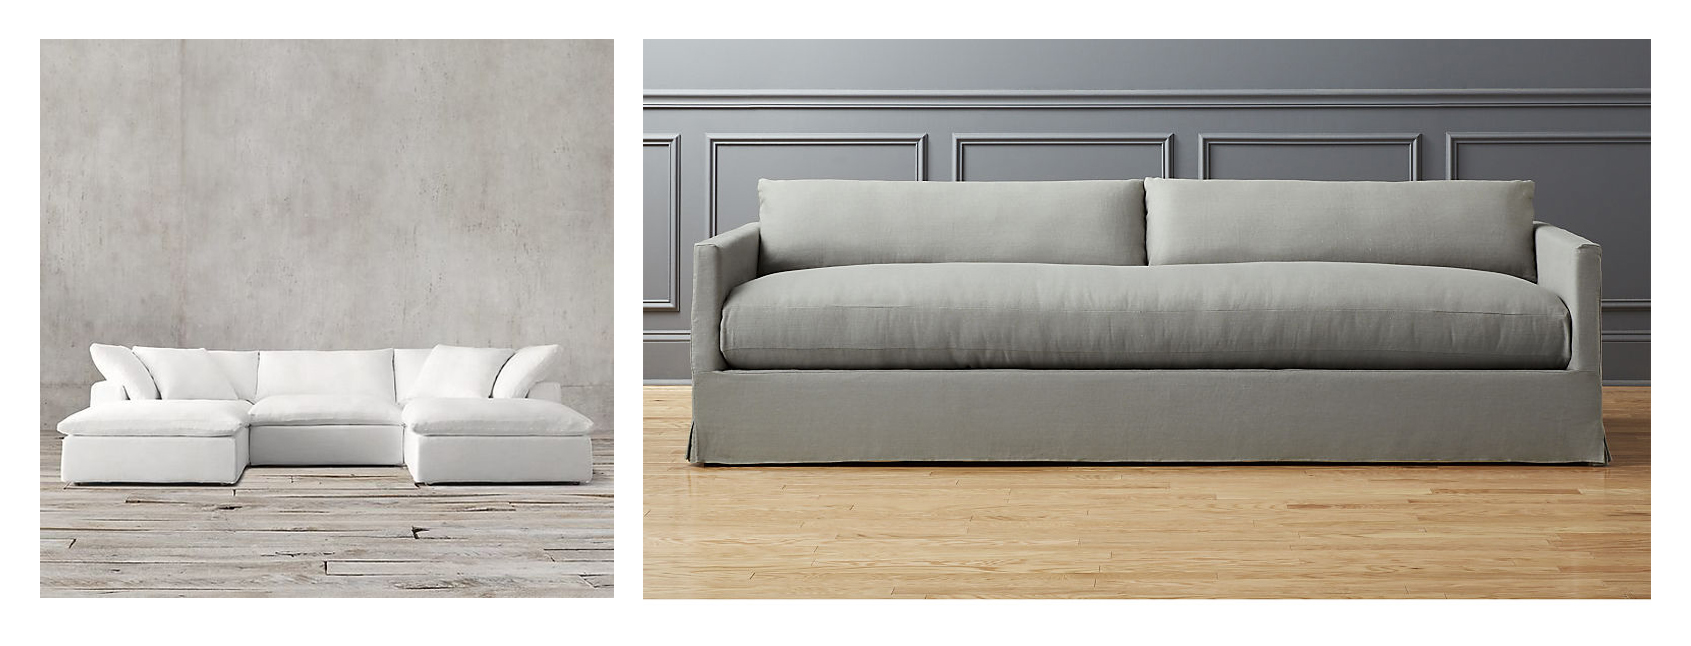 legless couches in grey and white